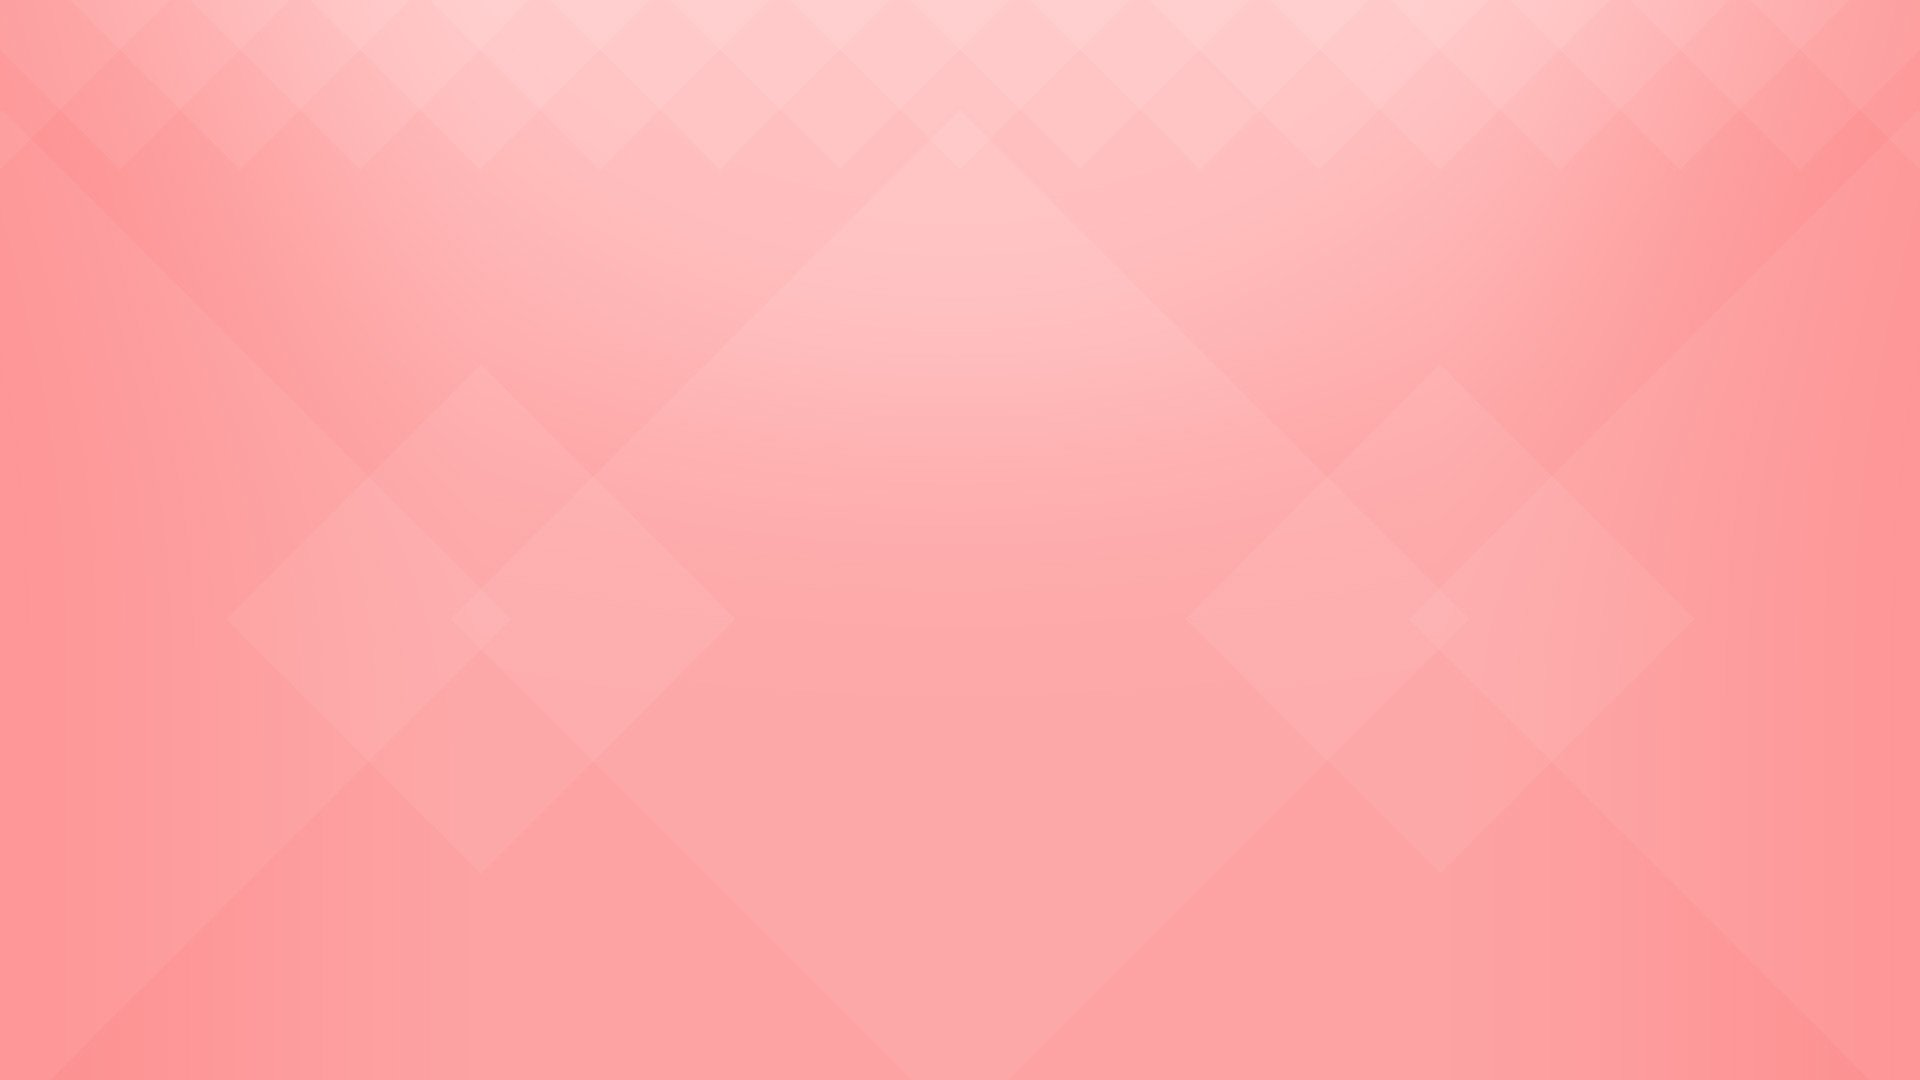 Coral Pink Wallpaper Custom backgrounds 1920x1080